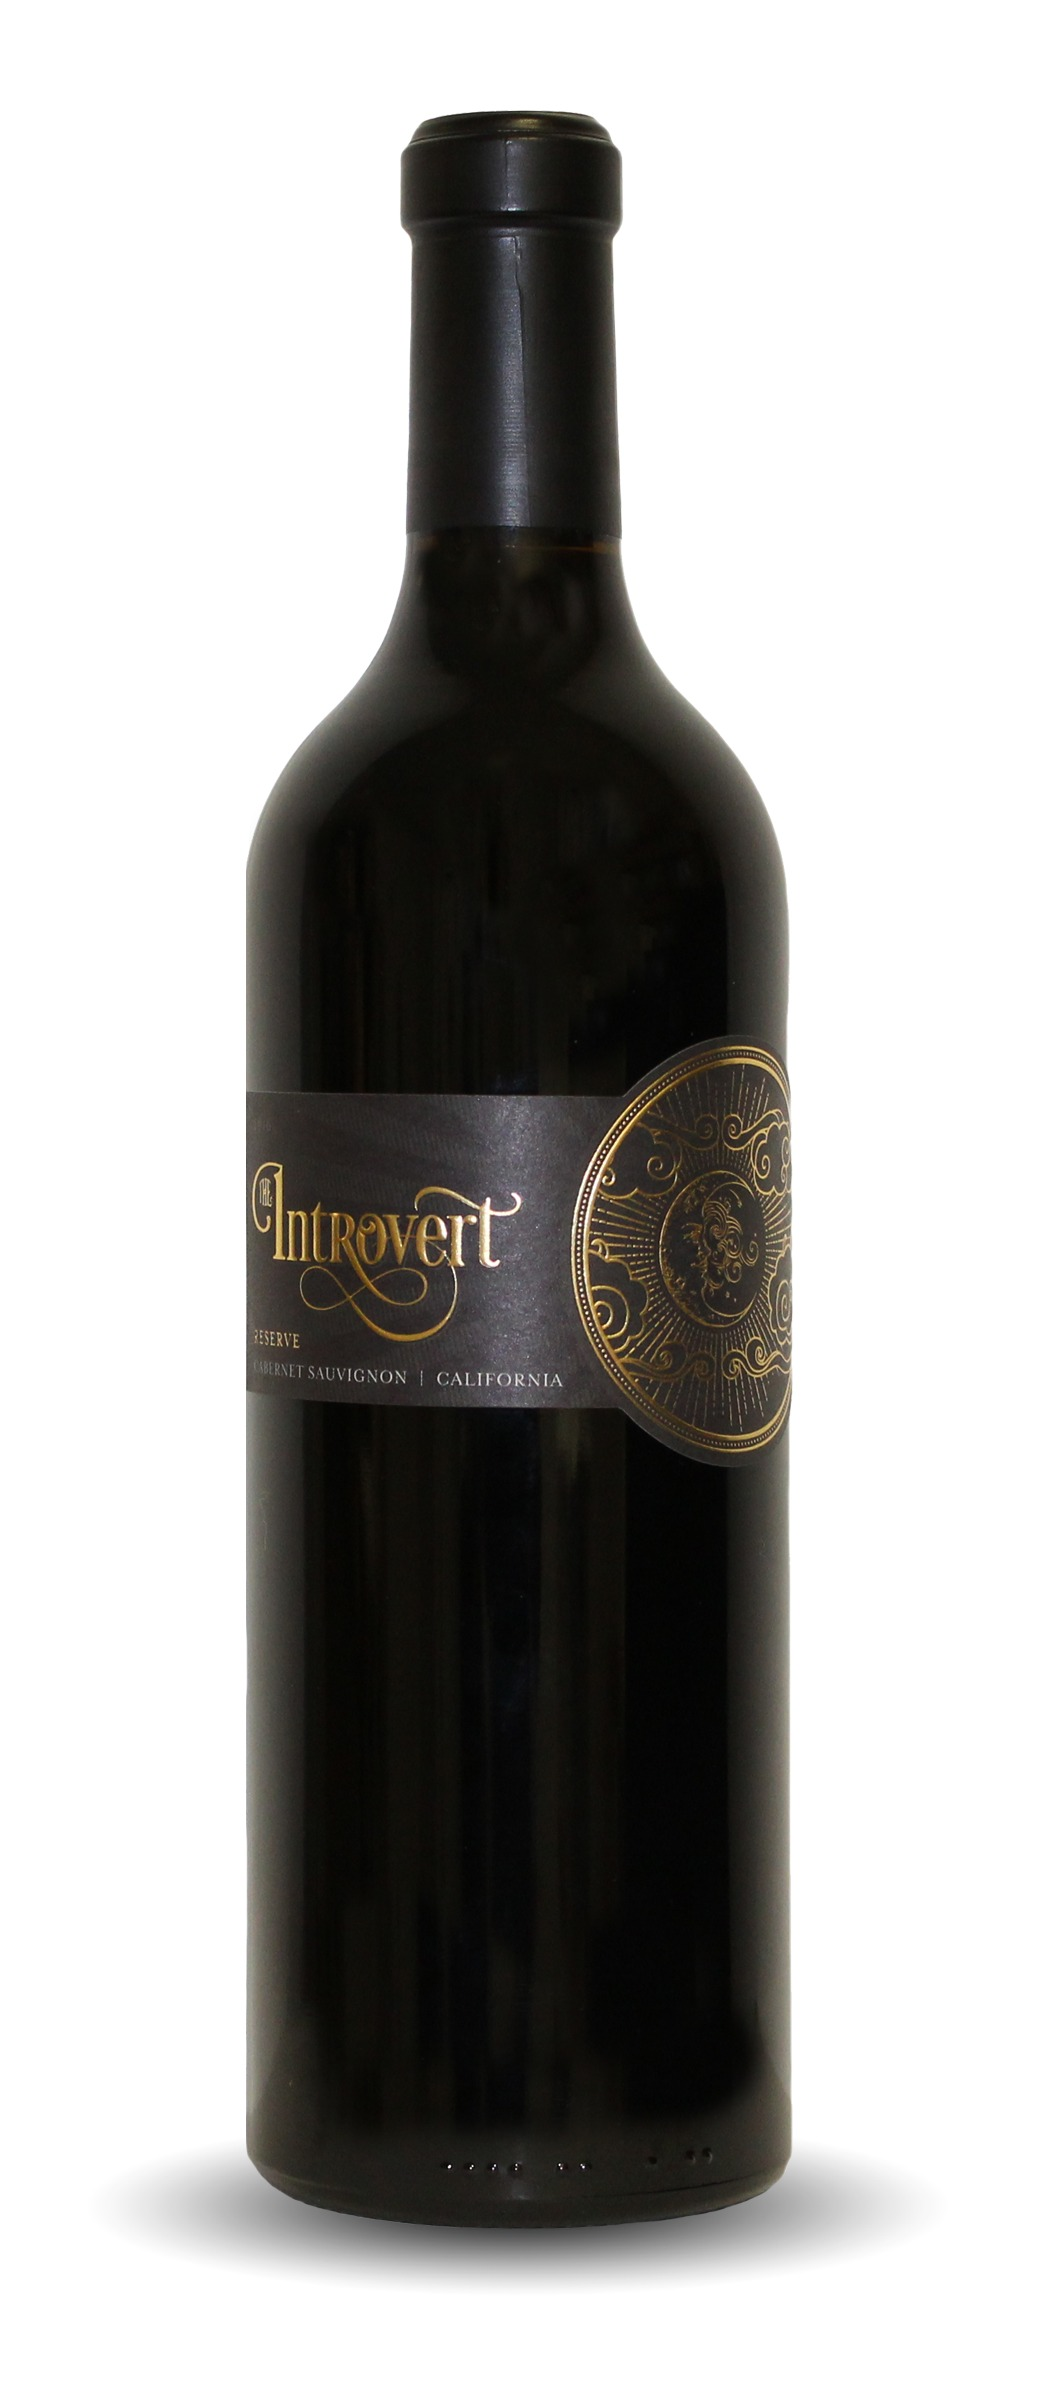 'The Introvert' Reserve Cabernet Sauvignon, California